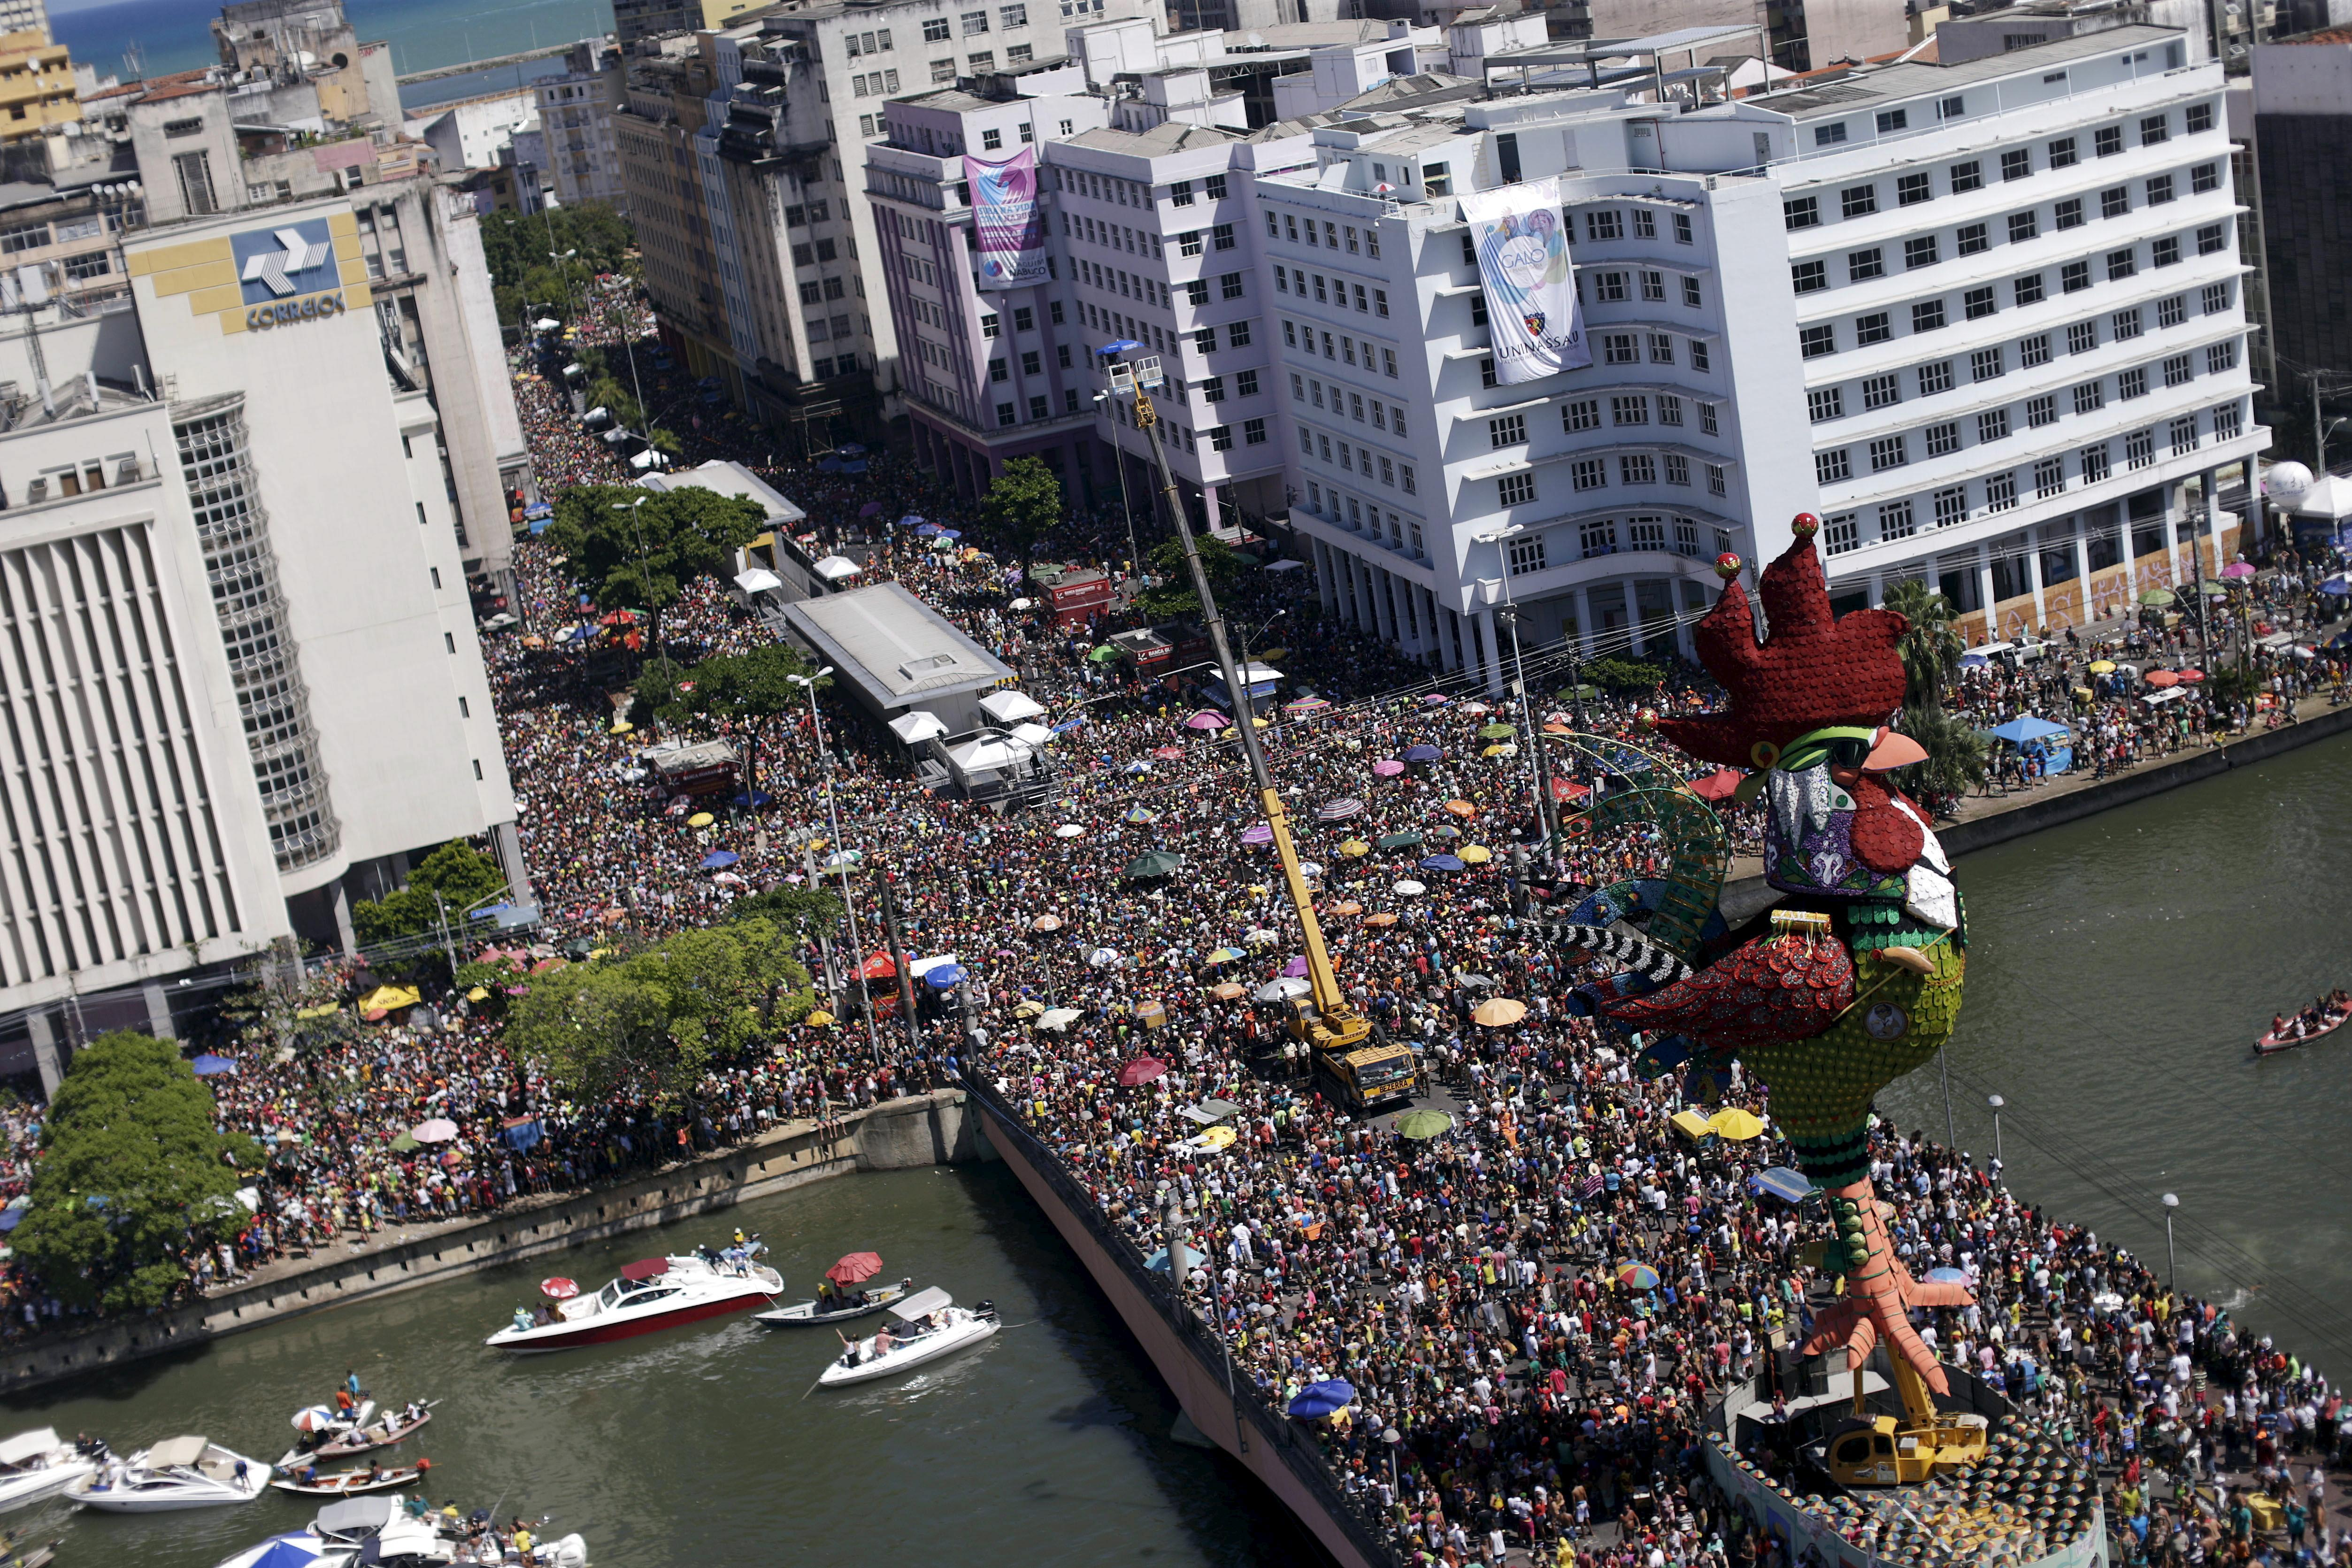 People enjoying the carnival on the streets of Recife.